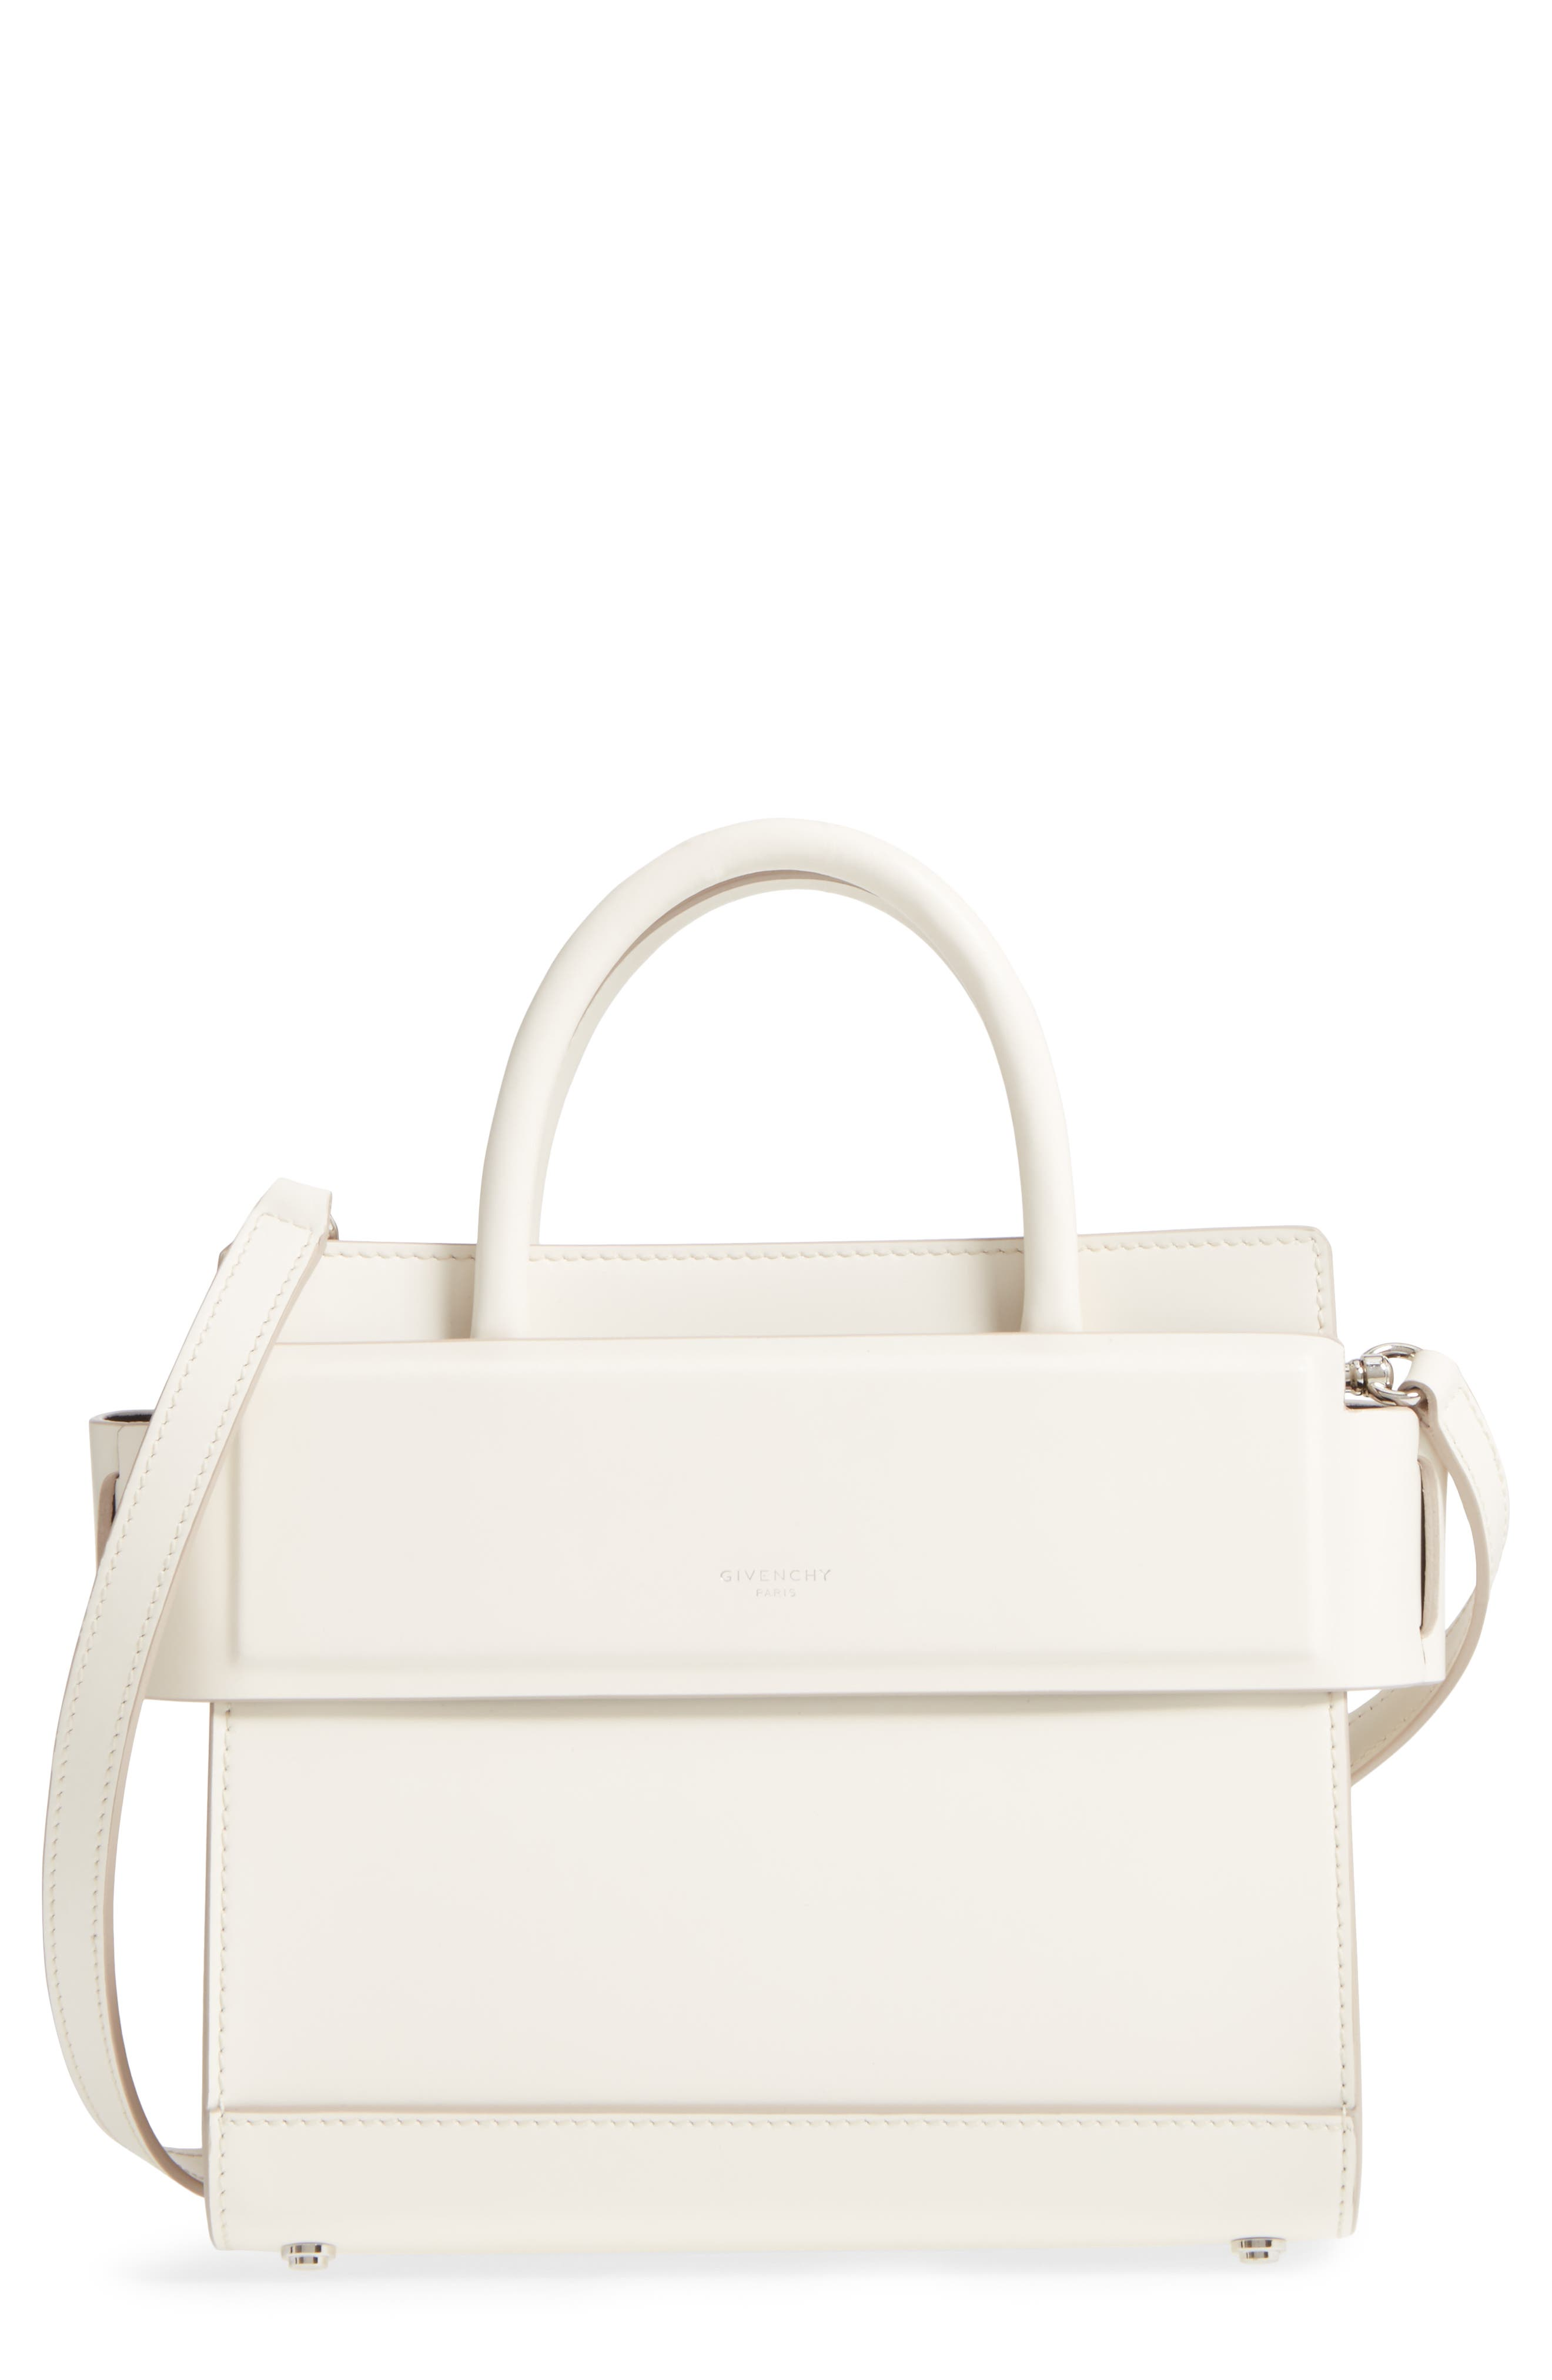 Givenchy Mini Horizon Calfskin Leather Tote